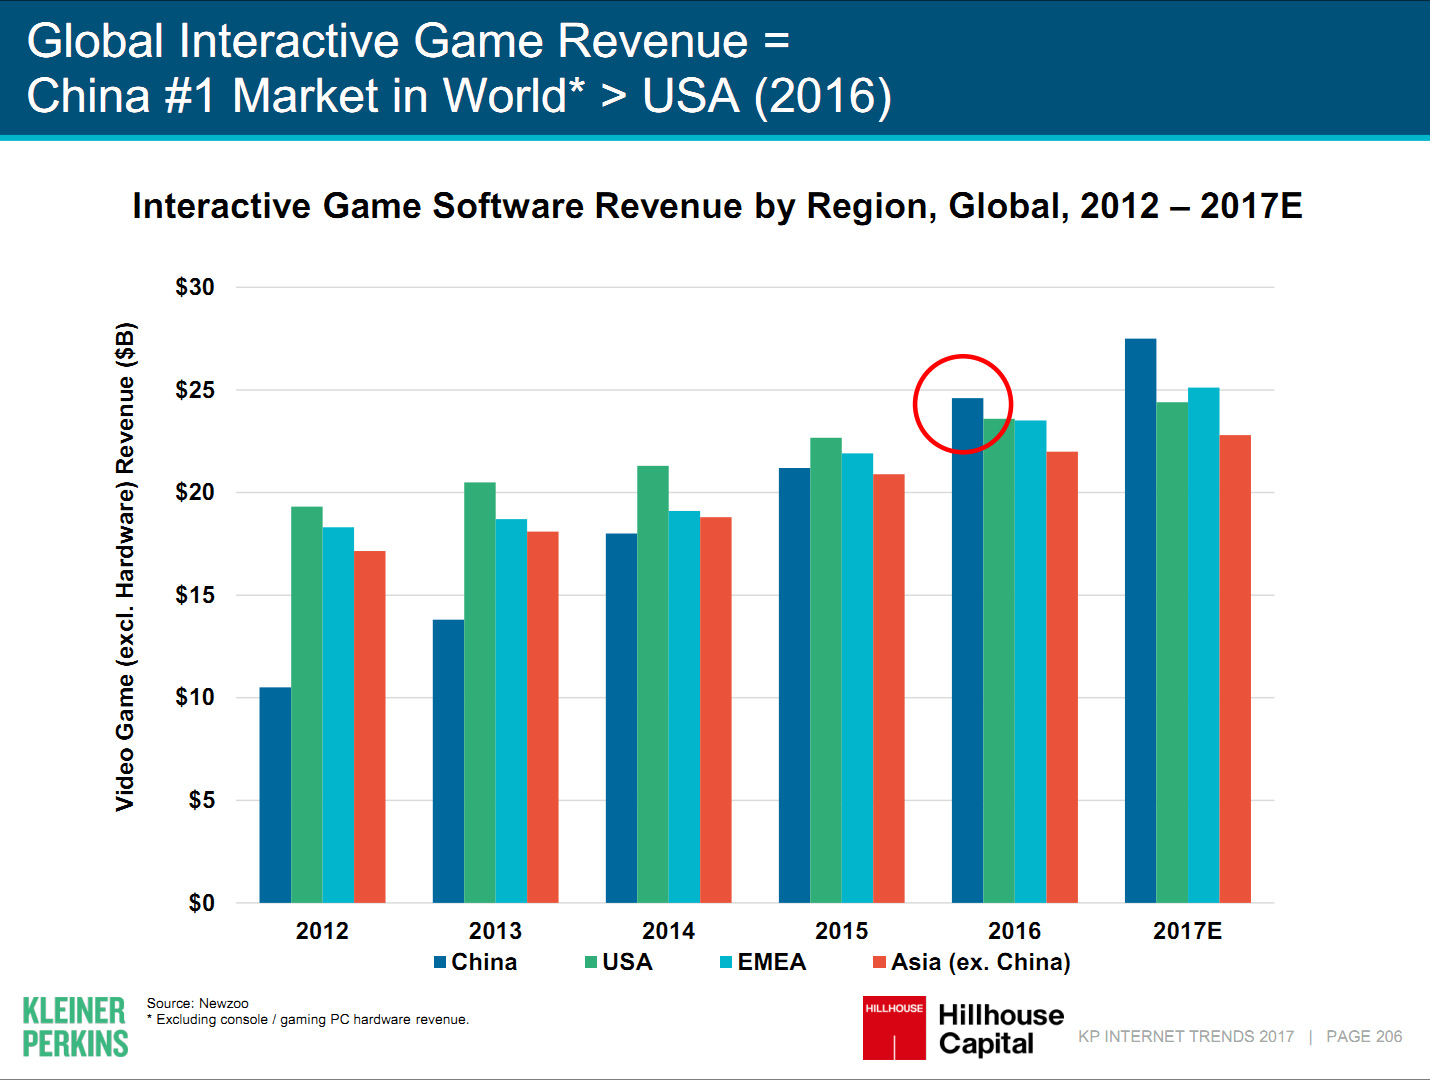 Game Revenue is high in China